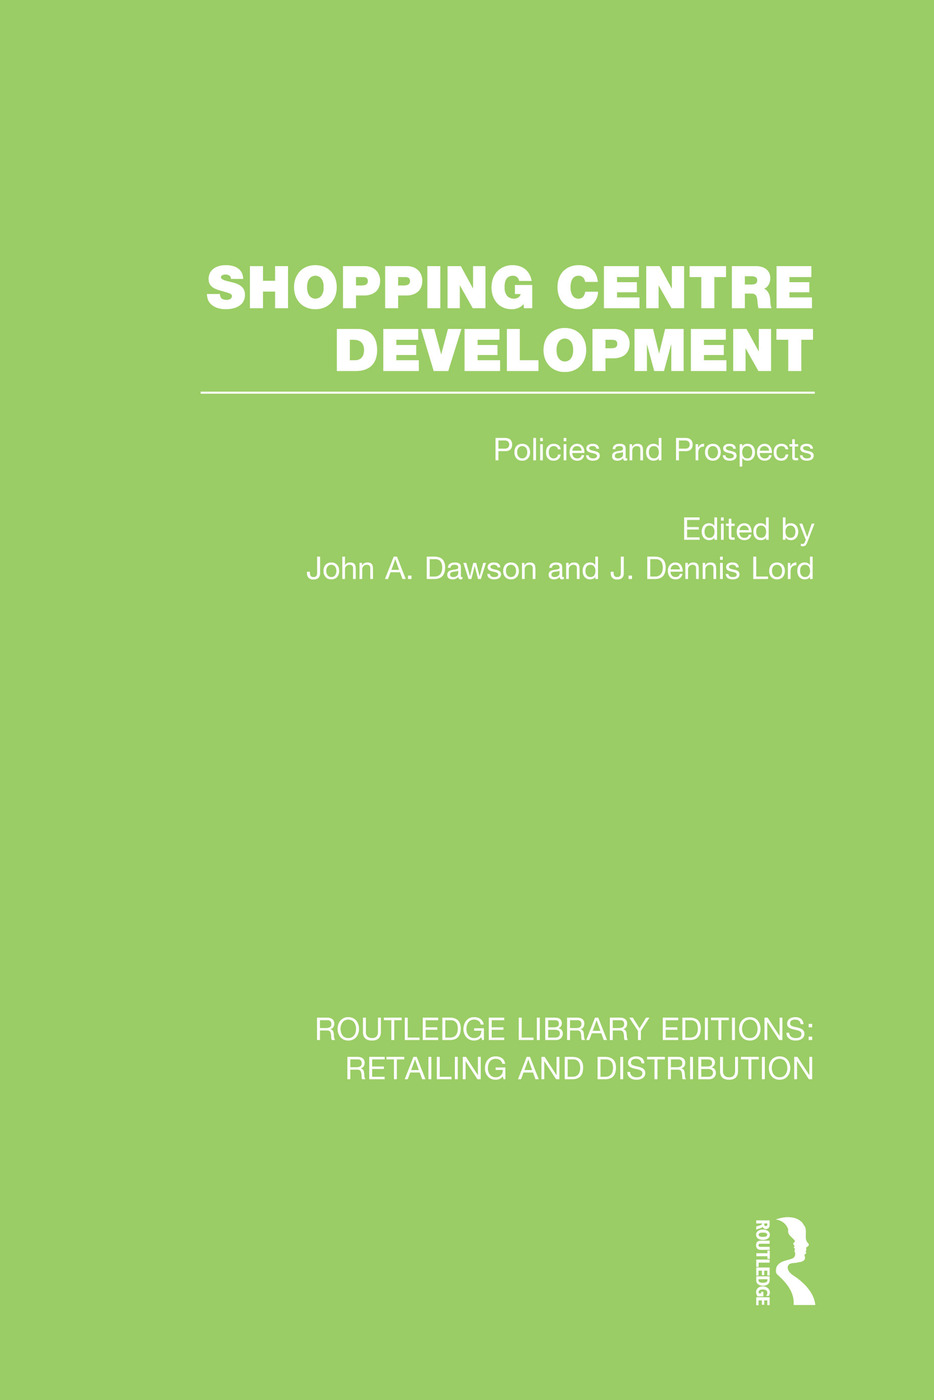 Shopping Centre Development (RLE Retailing and Distribution) book cover